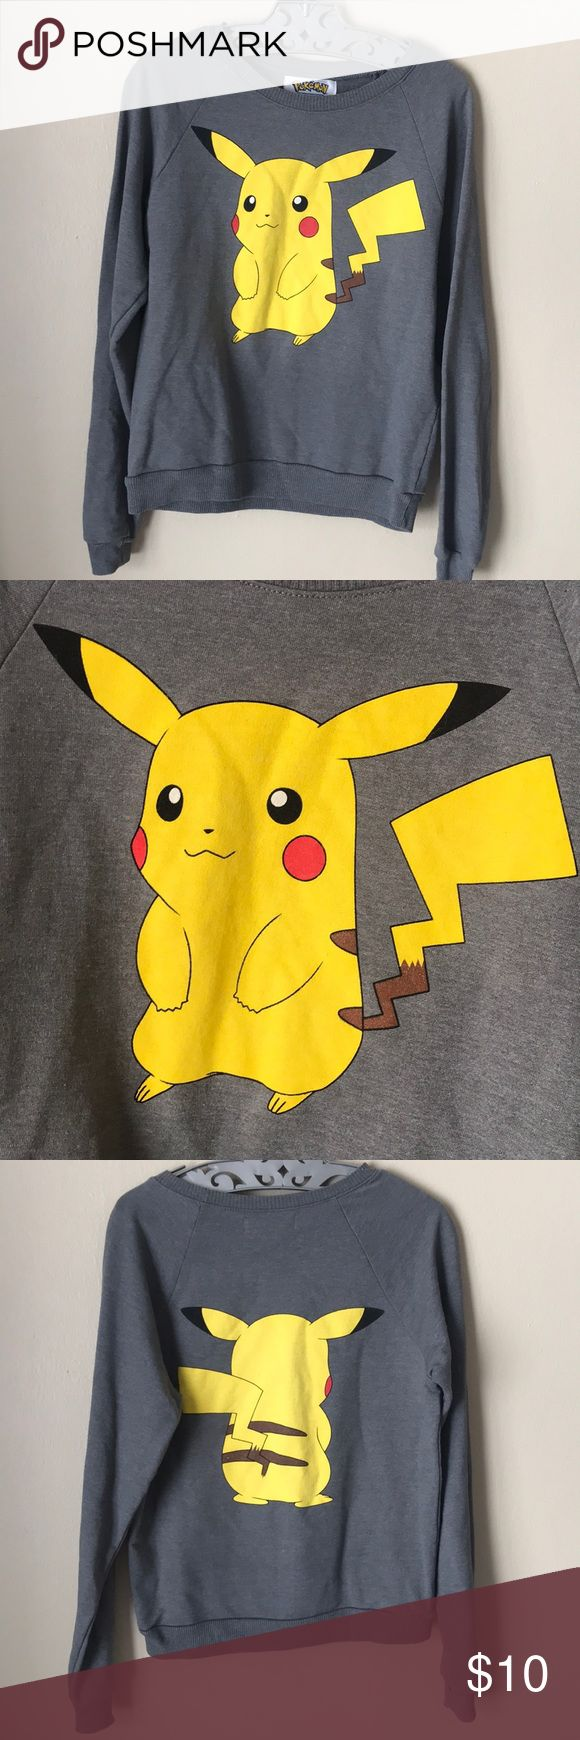 Pokémon Pikachu Sweater Excellent condition. Size small. Pokemon Sweaters Crew & Scoop Necks